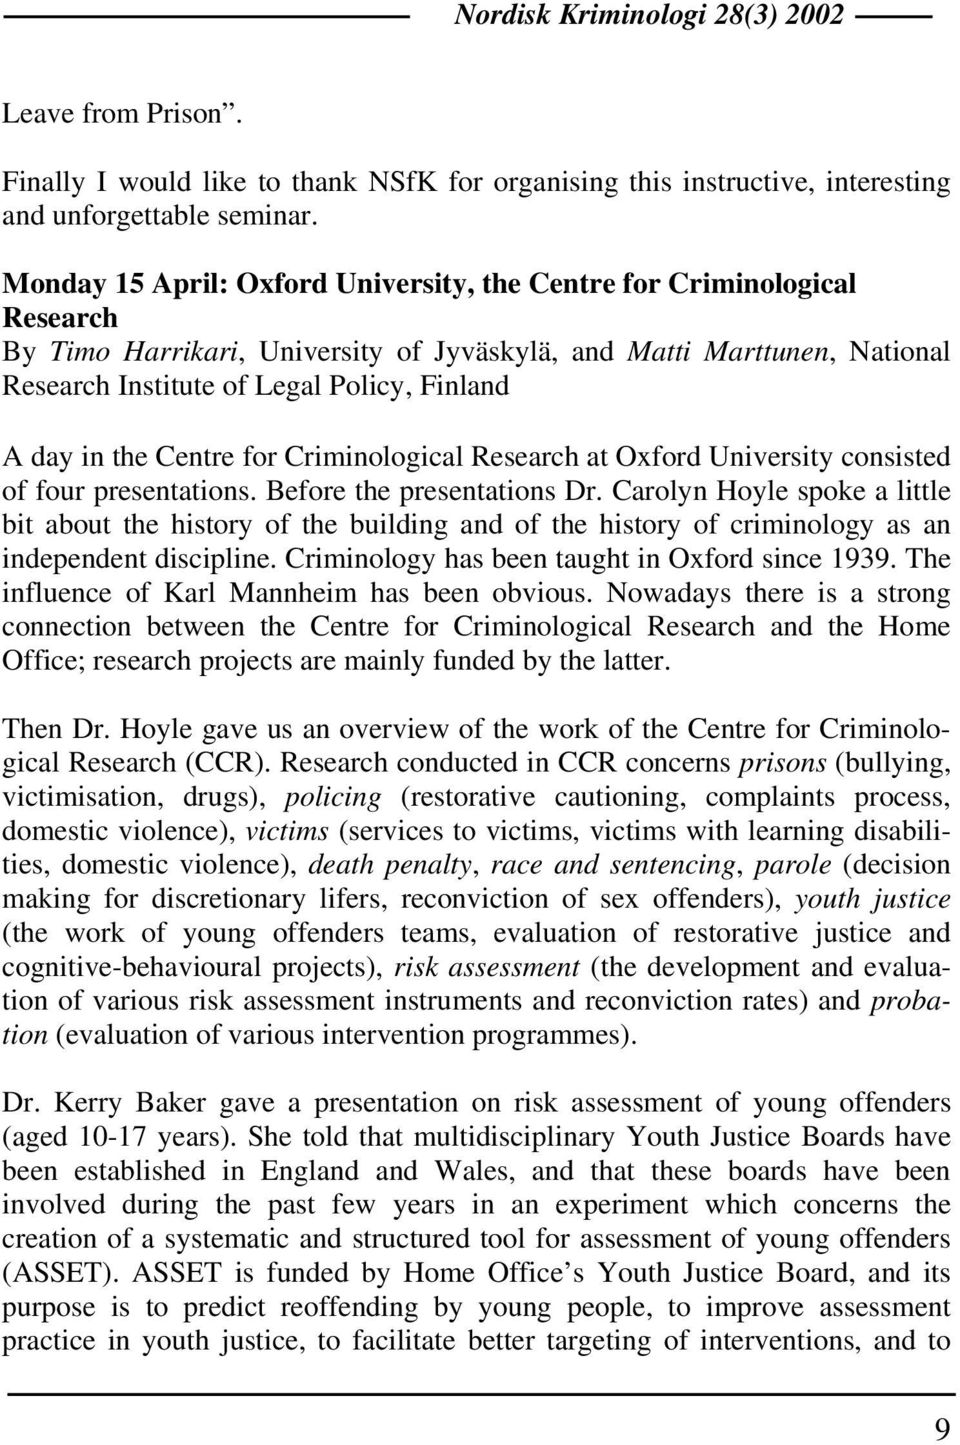 in the Centre for Criminological Research at Oxford University consisted of four presentations. Before the presentations Dr.